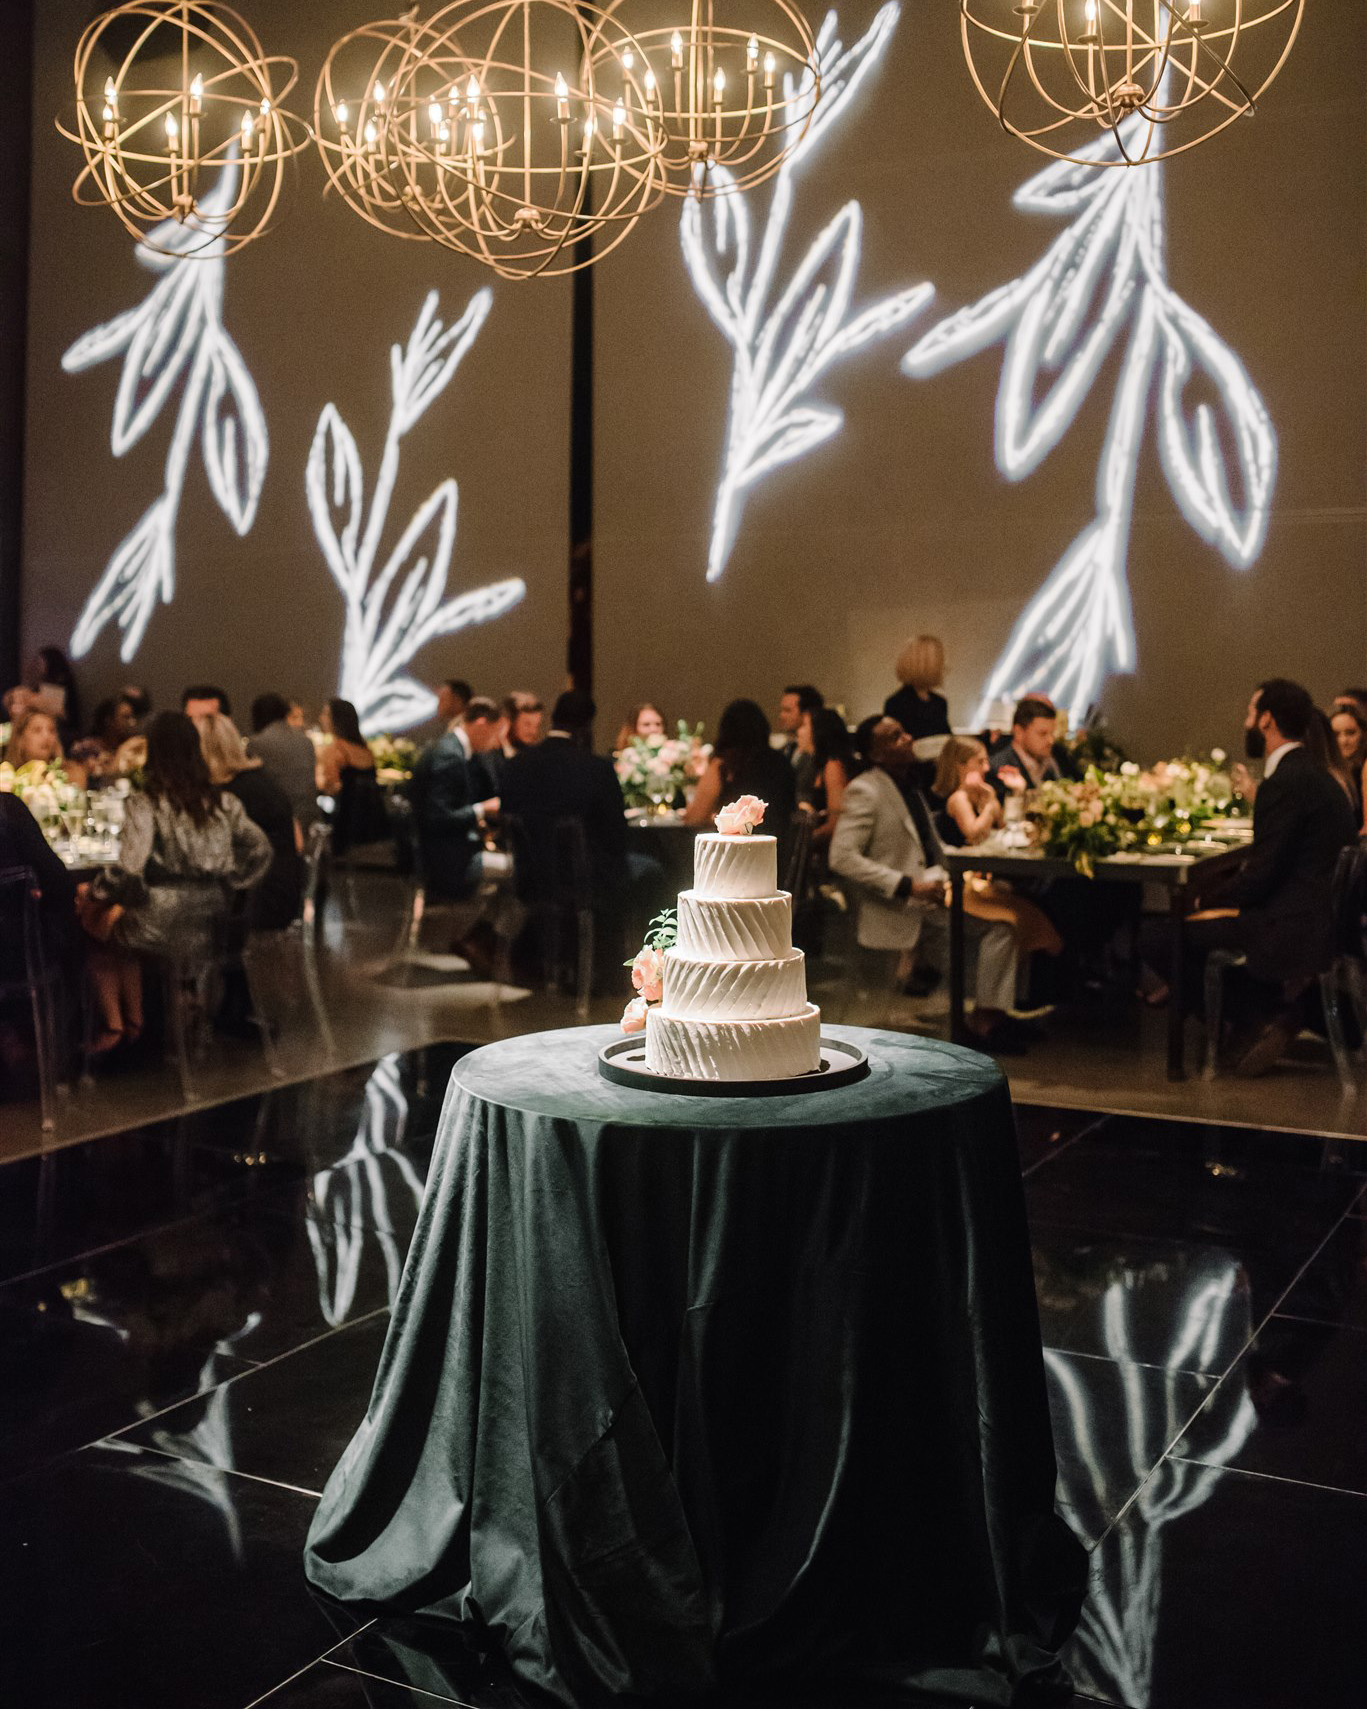 4-tiered white wedding cake guests seated in background